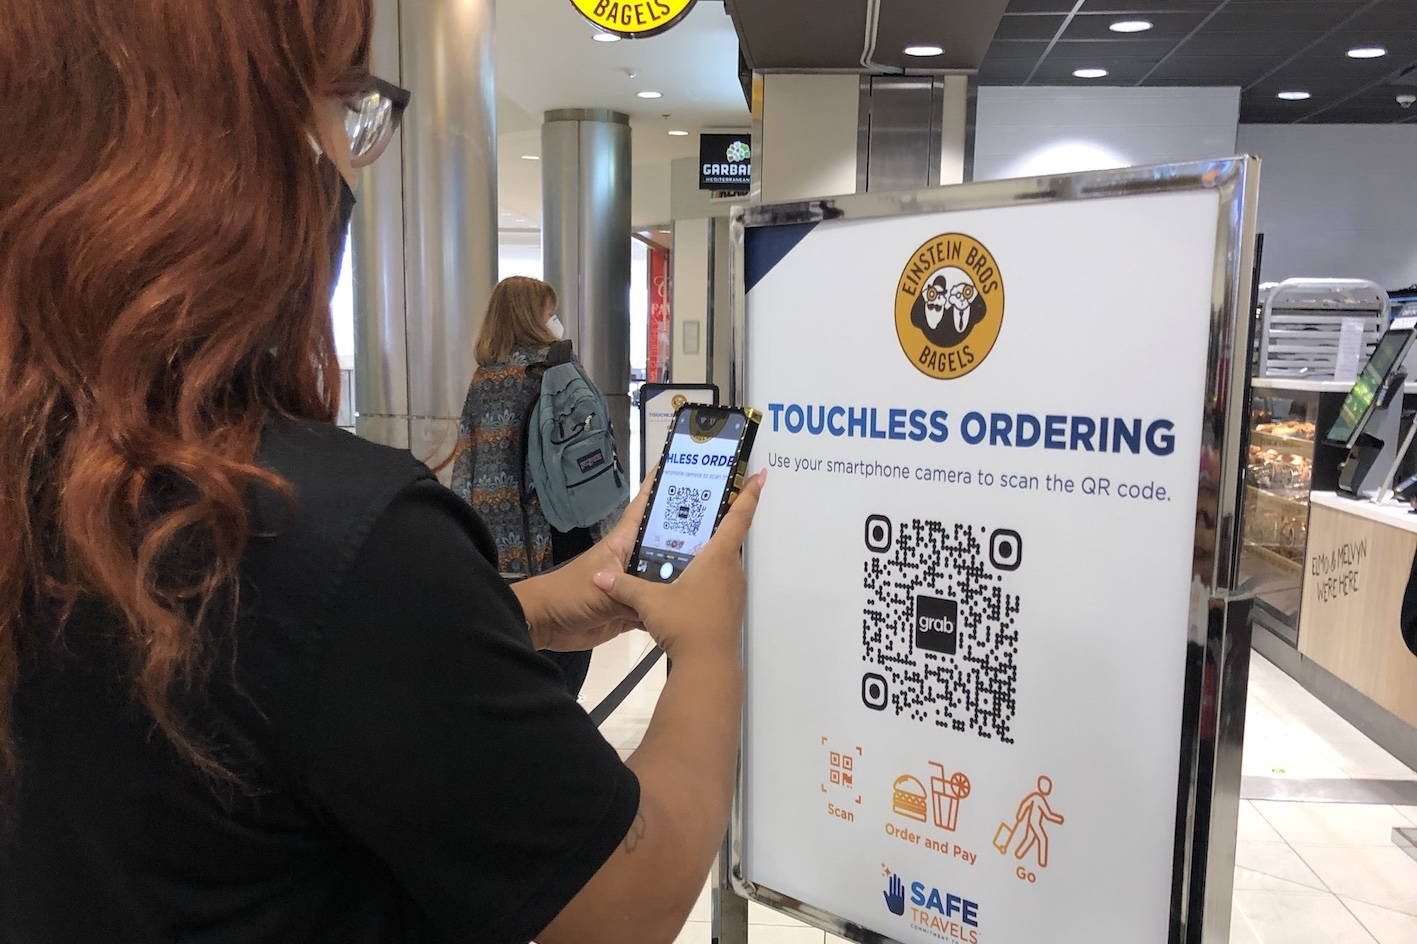 Delaware North and Grab launch some of first virtual kiosks in a U.S. airport